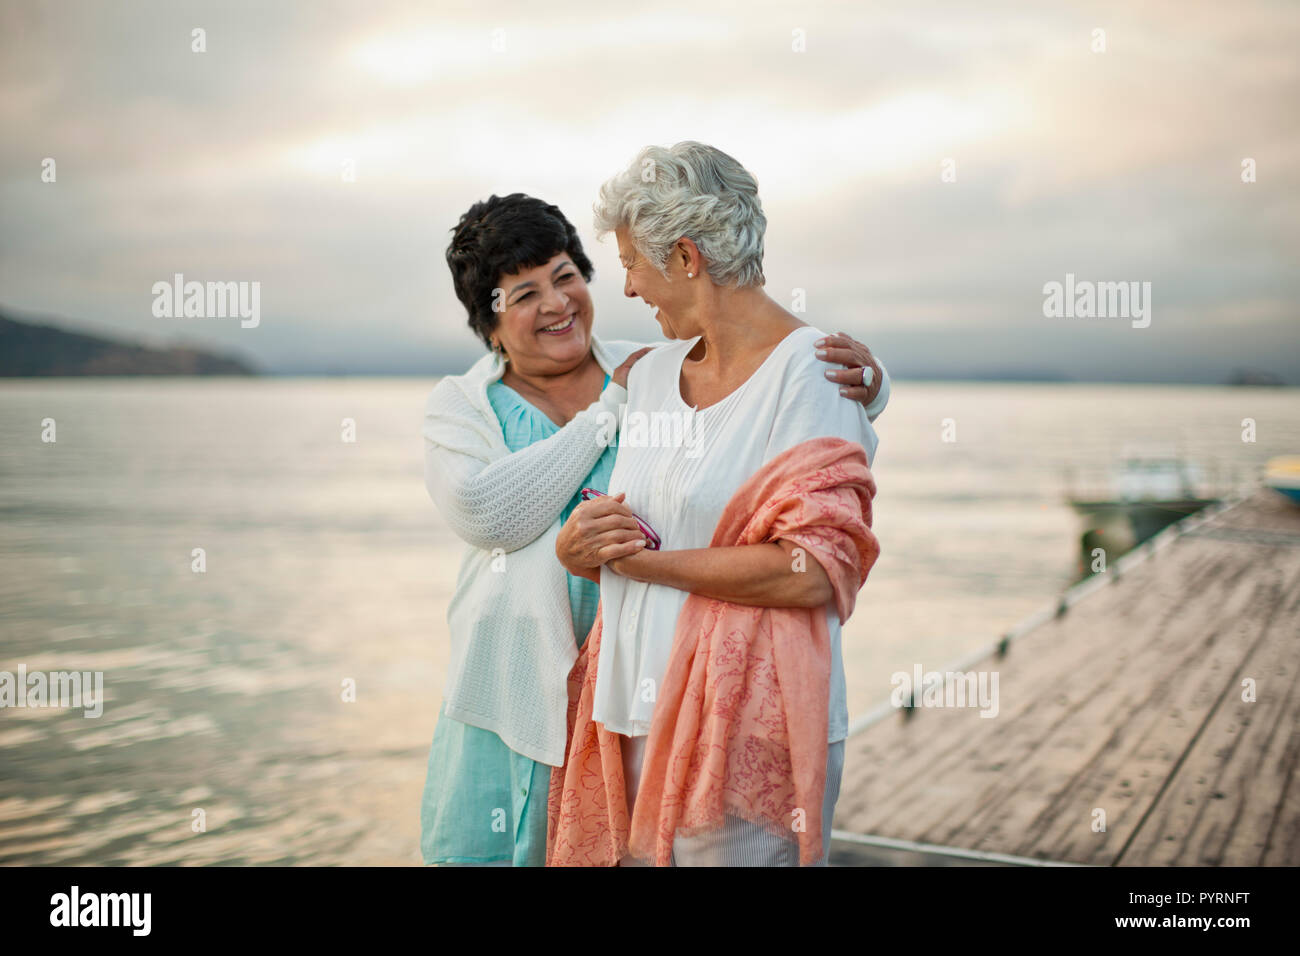 Two happy mature women have fun together as they chat and walk along a jetty. - Stock Image